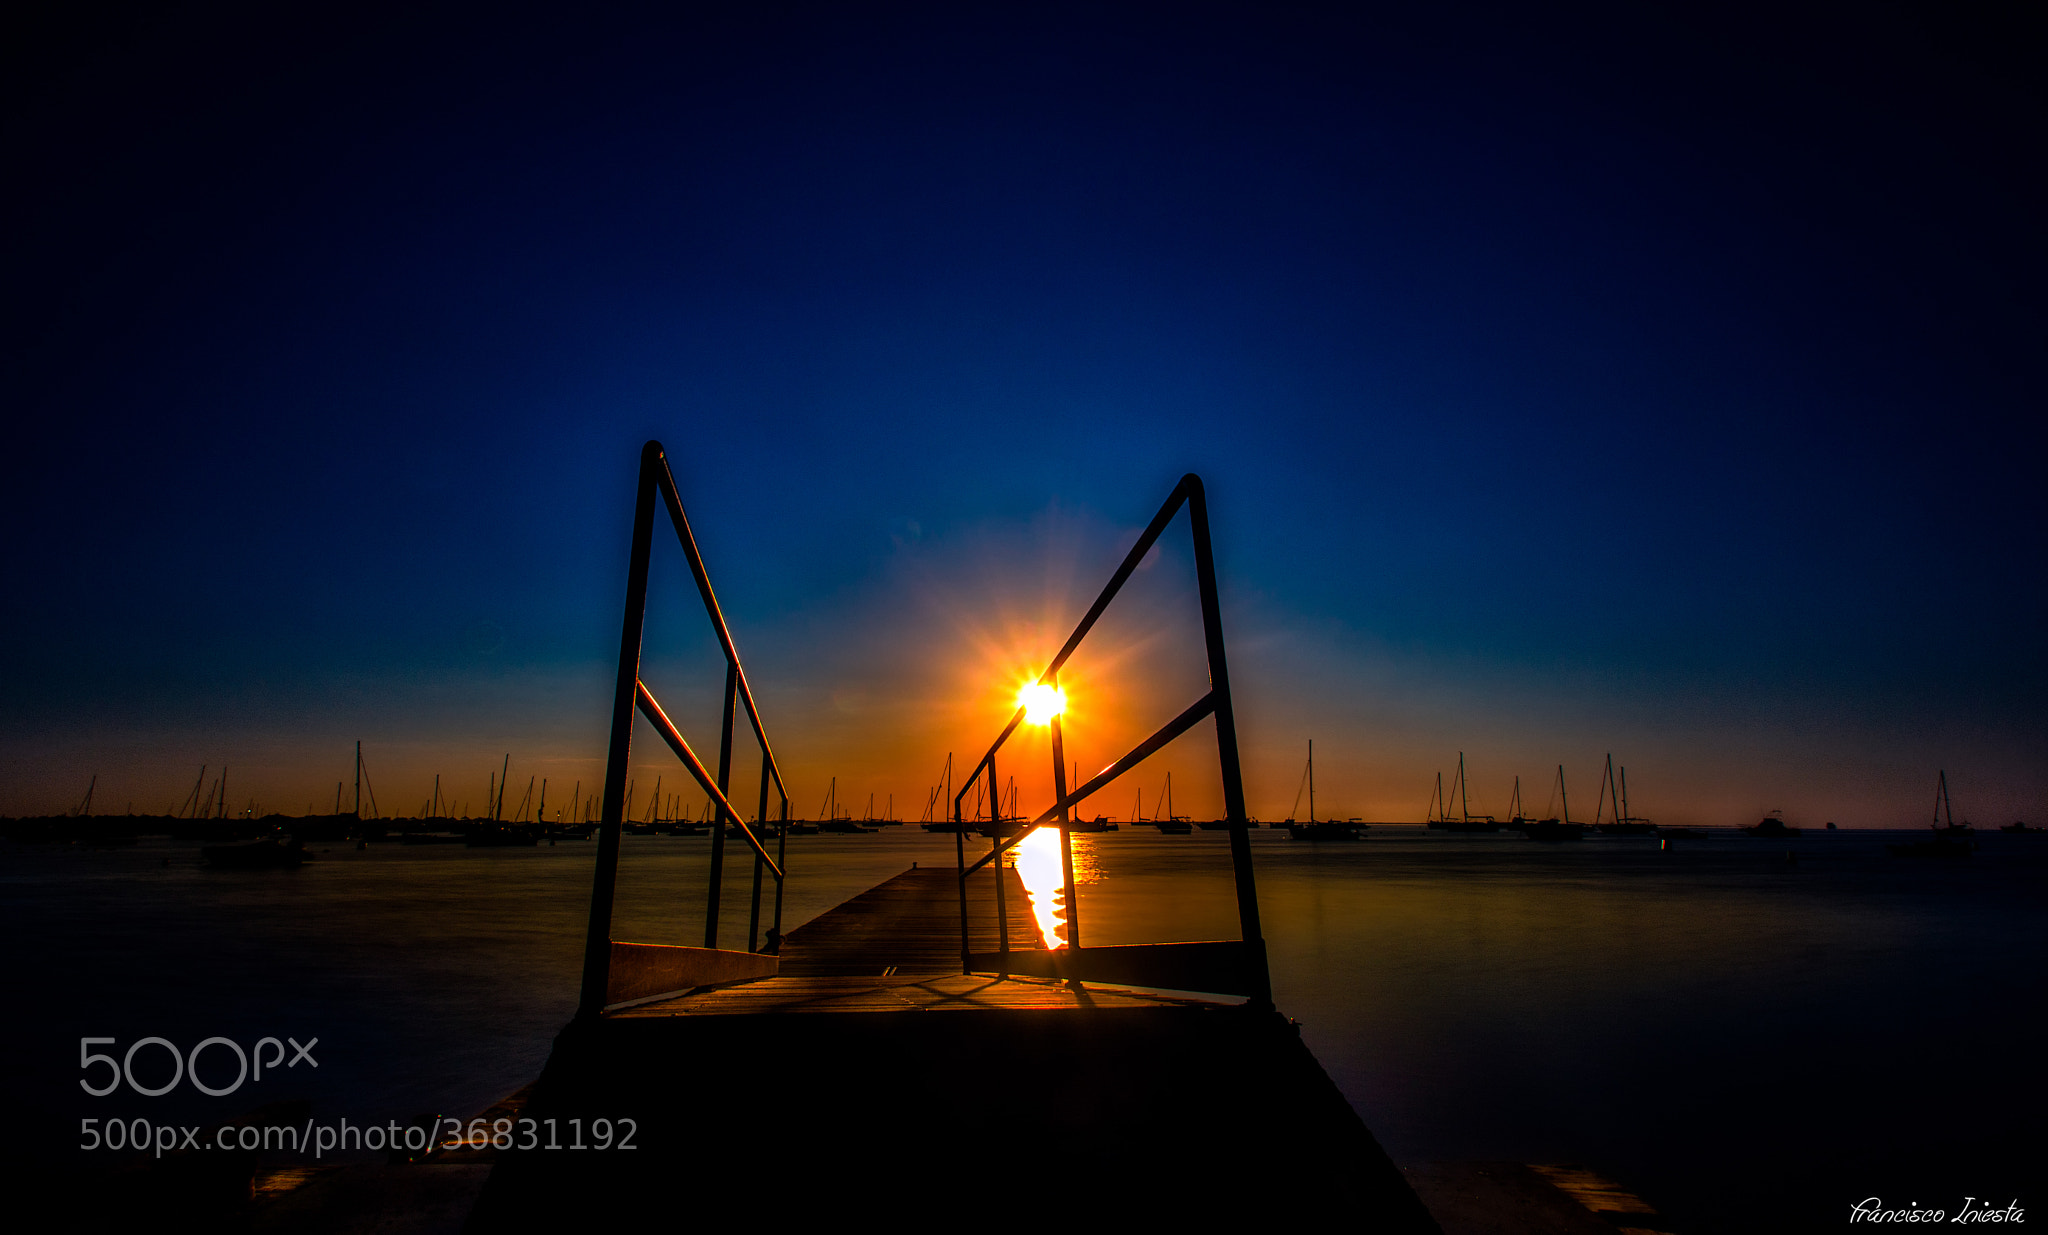 Photograph sunlight by Francisco Iniesta on 500px